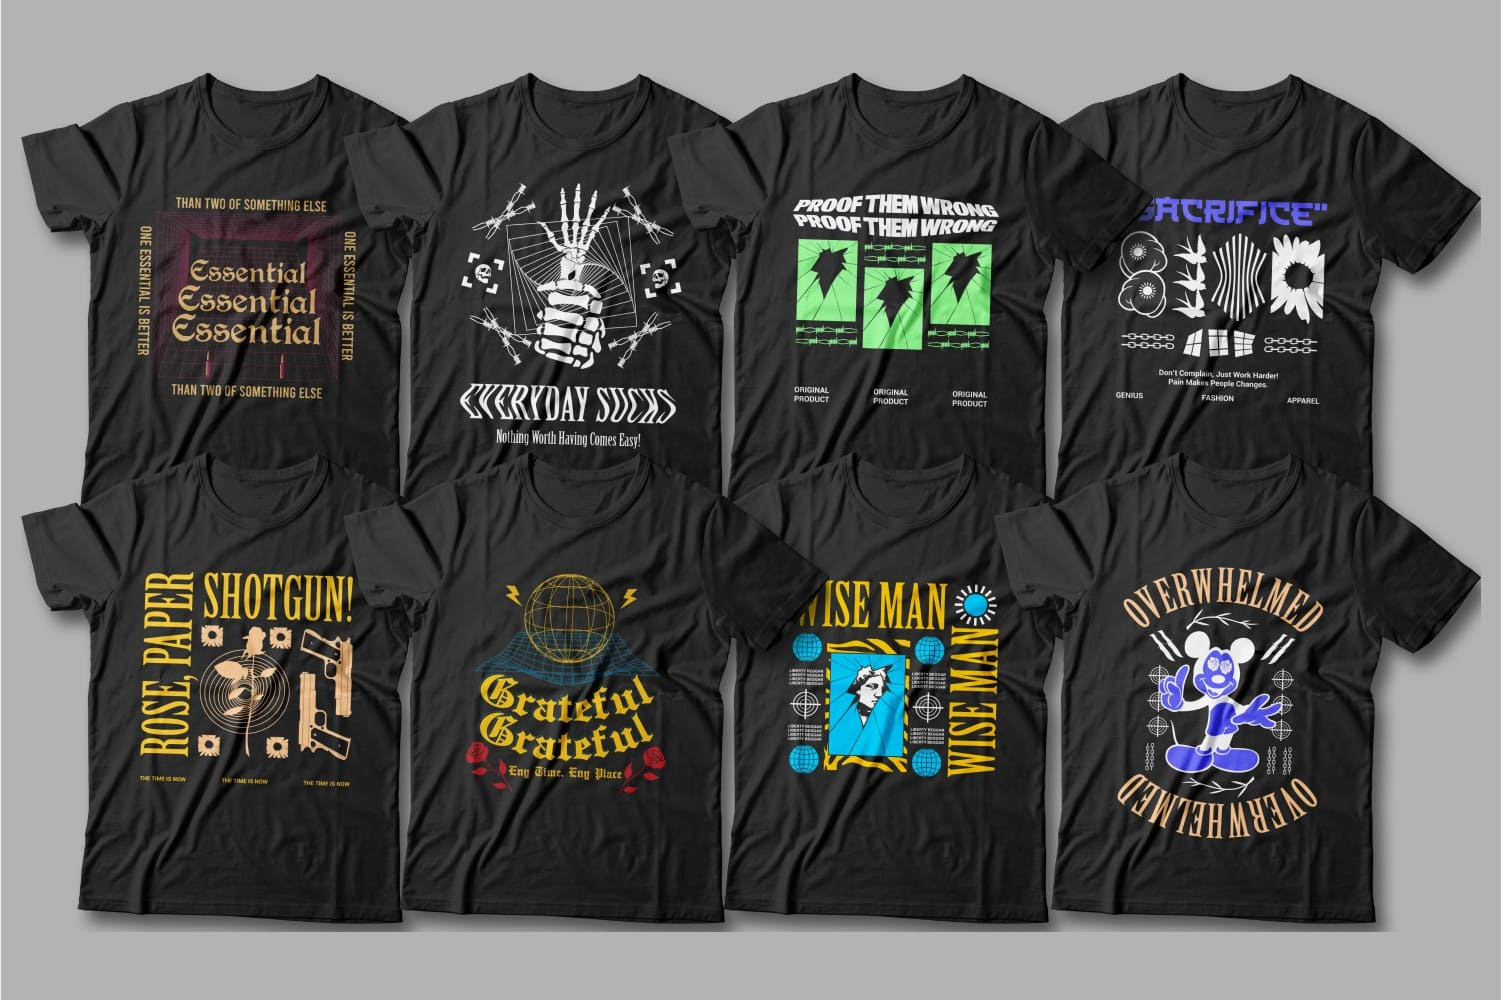 Black t-shirts with bright pictures.